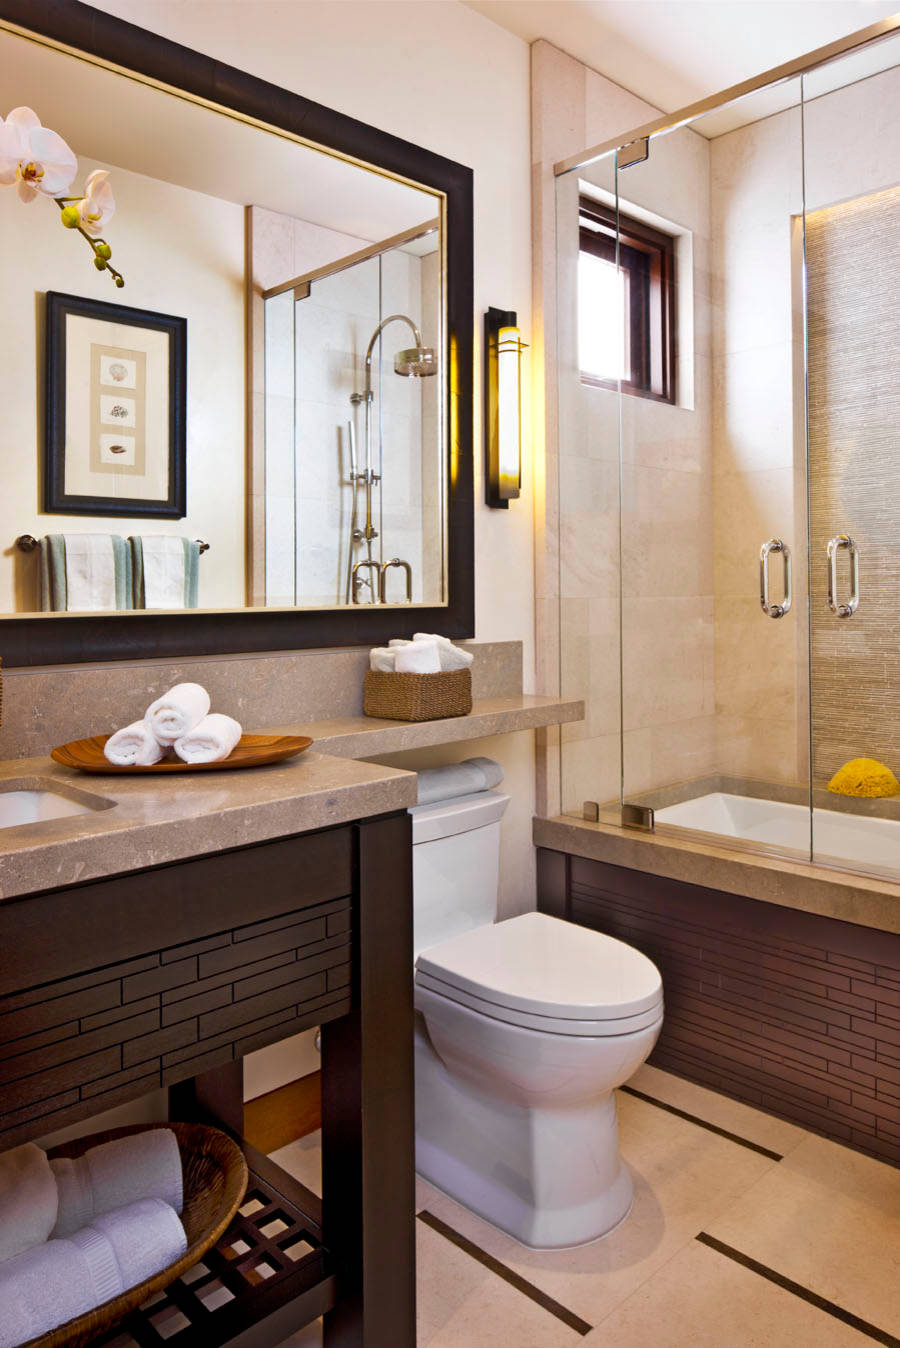 modern-pictures-of-toilet-bowls-with-beautifull-bathroom-in-corner-bathtub-designs-accented-by-tiled-bath-surround